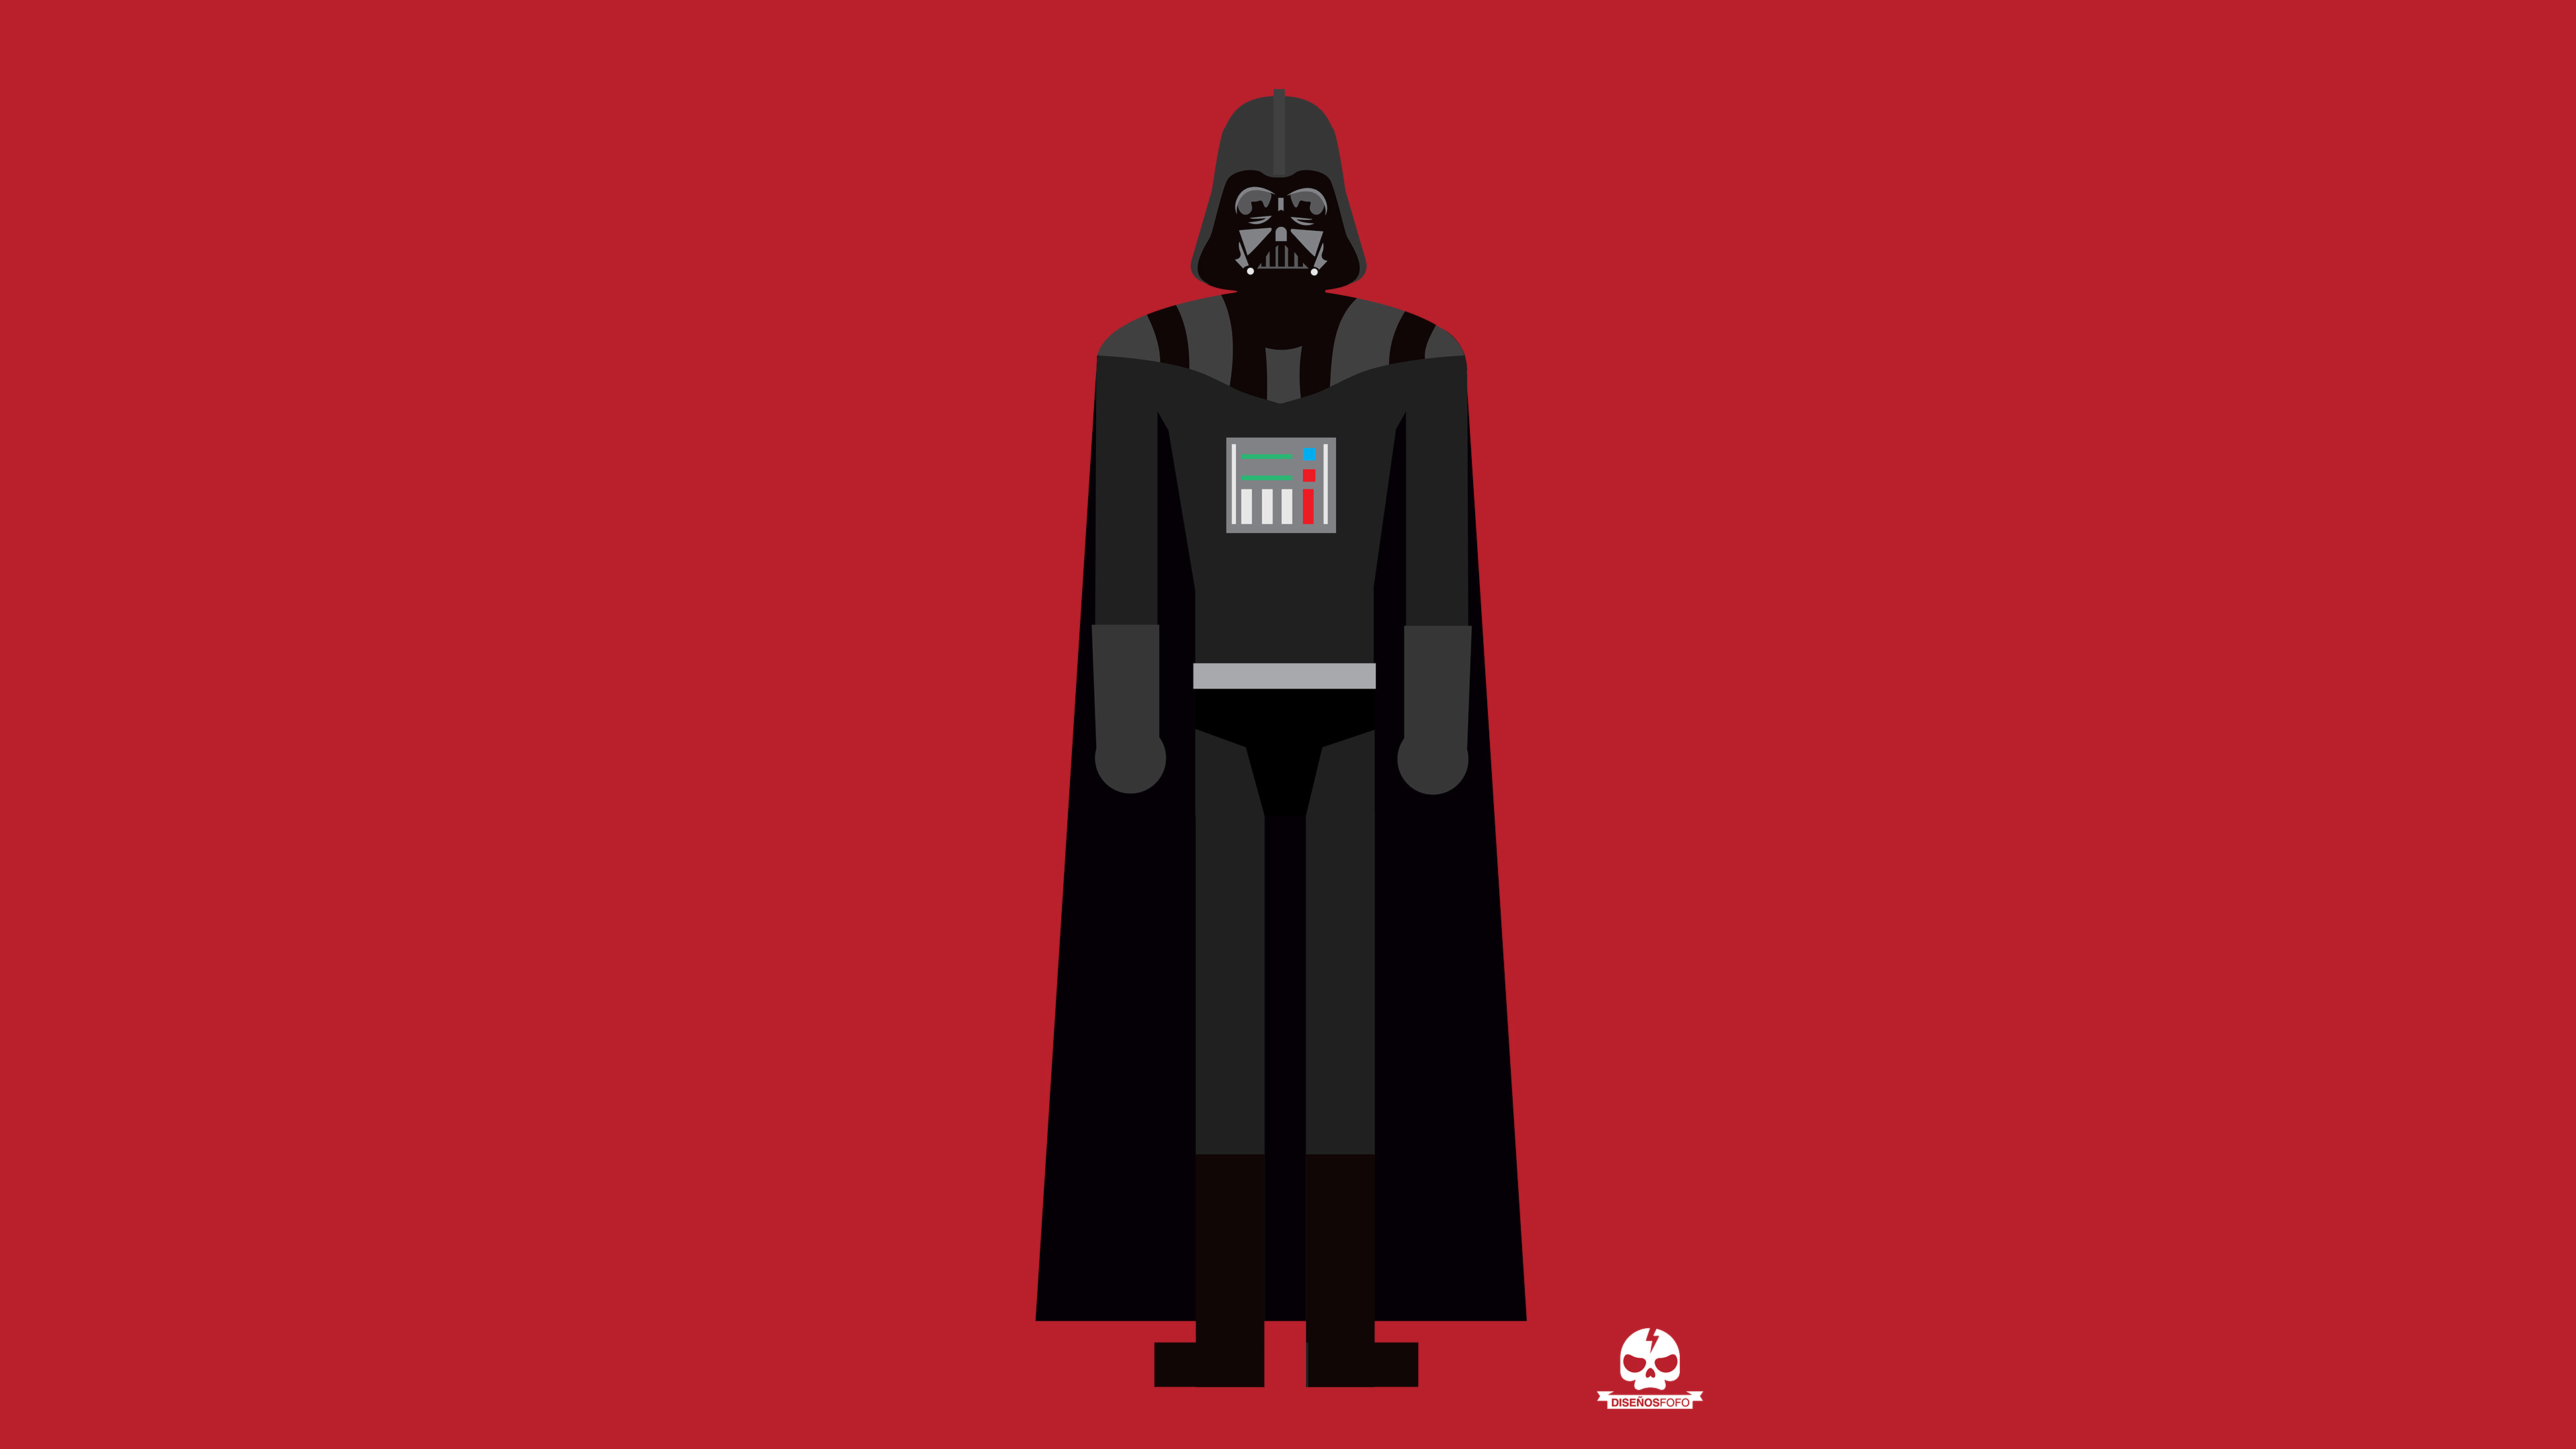 2048x1152 Darth Vader 4k Minimalism 2048x1152 Resolution HD 4k Wallpapers, Images, Backgrounds ...